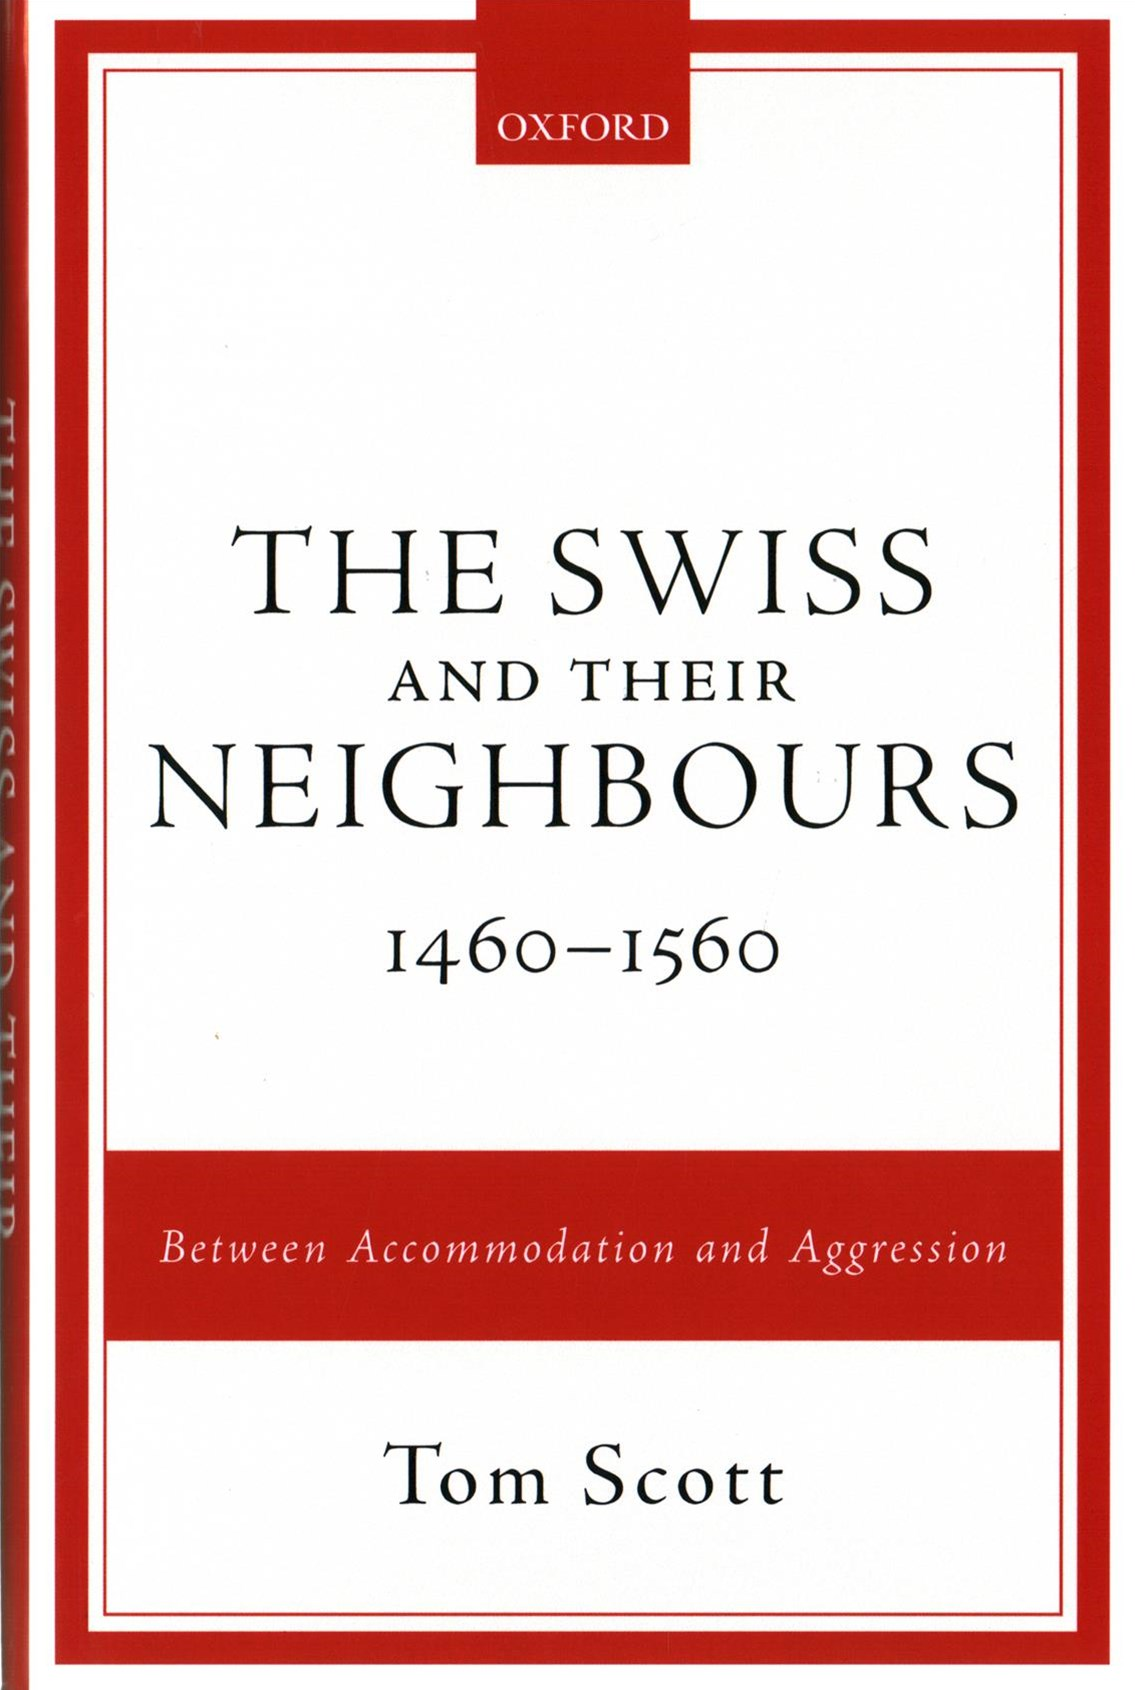 The Swiss and their Neighbours, 1460-1560